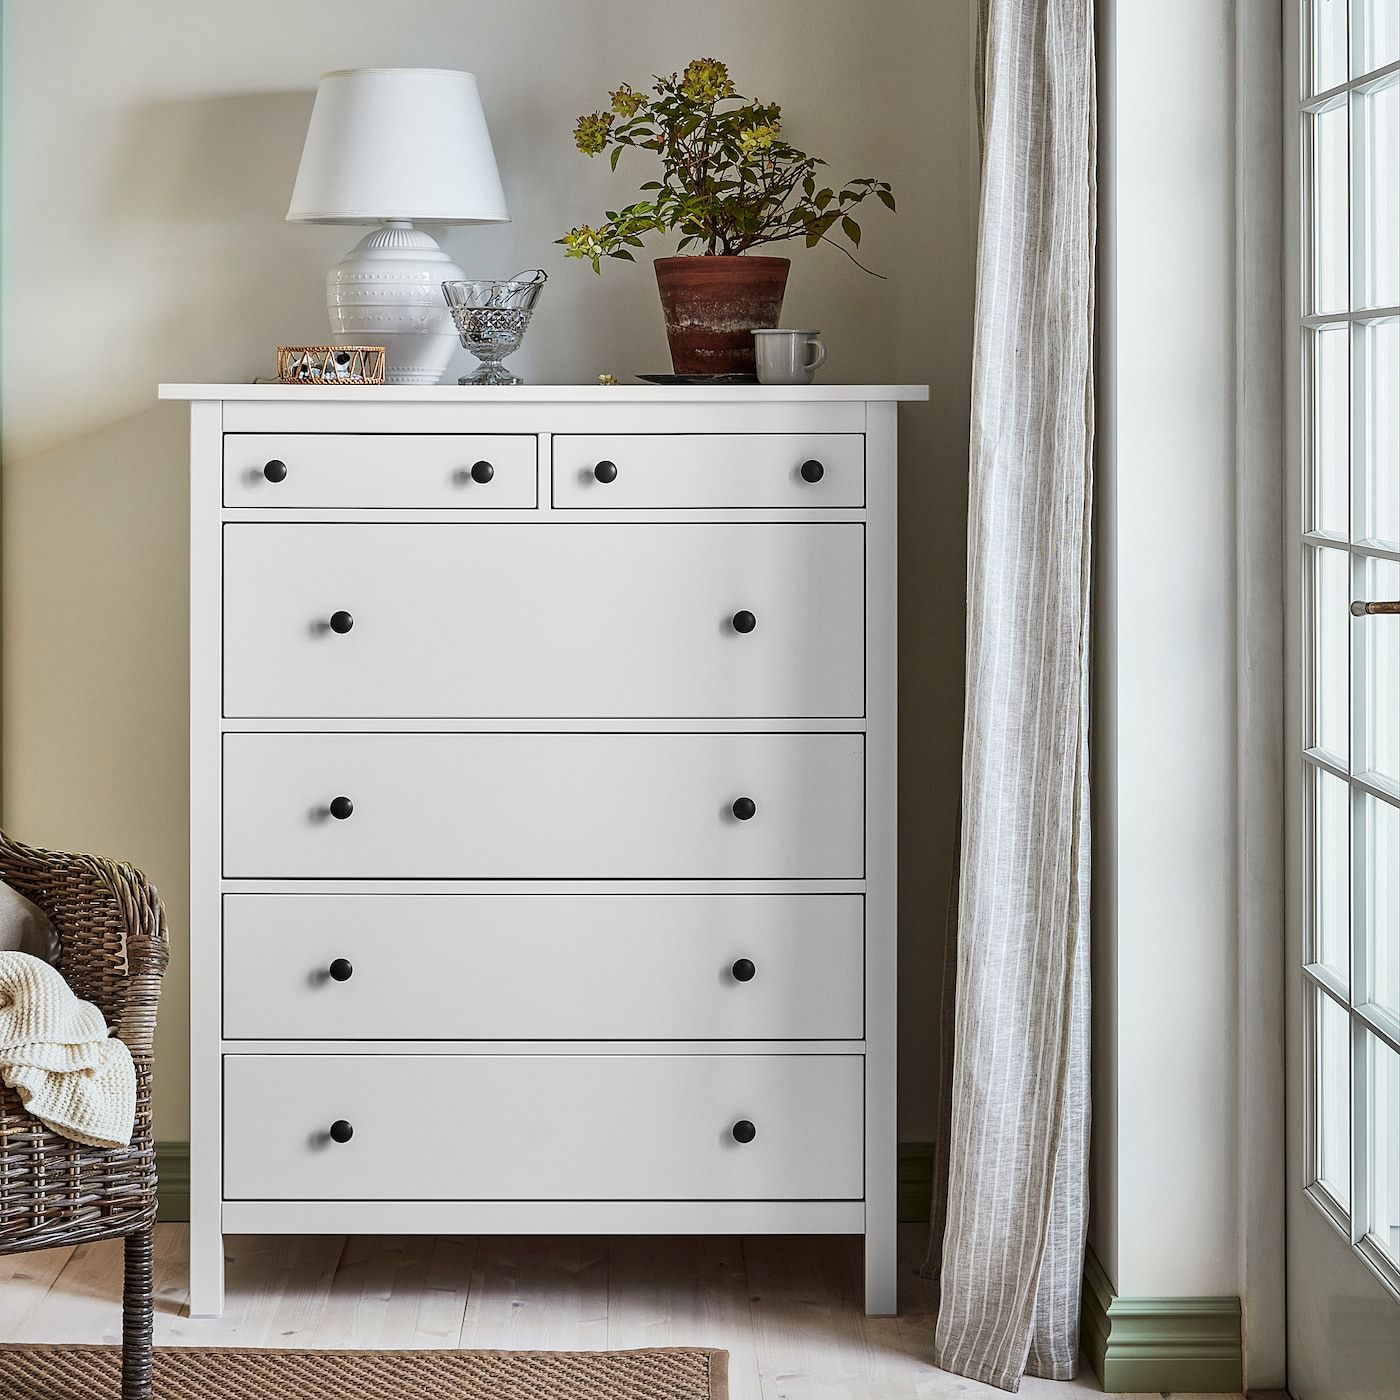 Hemnes 6 Drawer Chest White 42 1 2x51 5 8 Ikea In 2020 Ikea Chest Of Drawers Chest Of Drawers Decor Hemnes